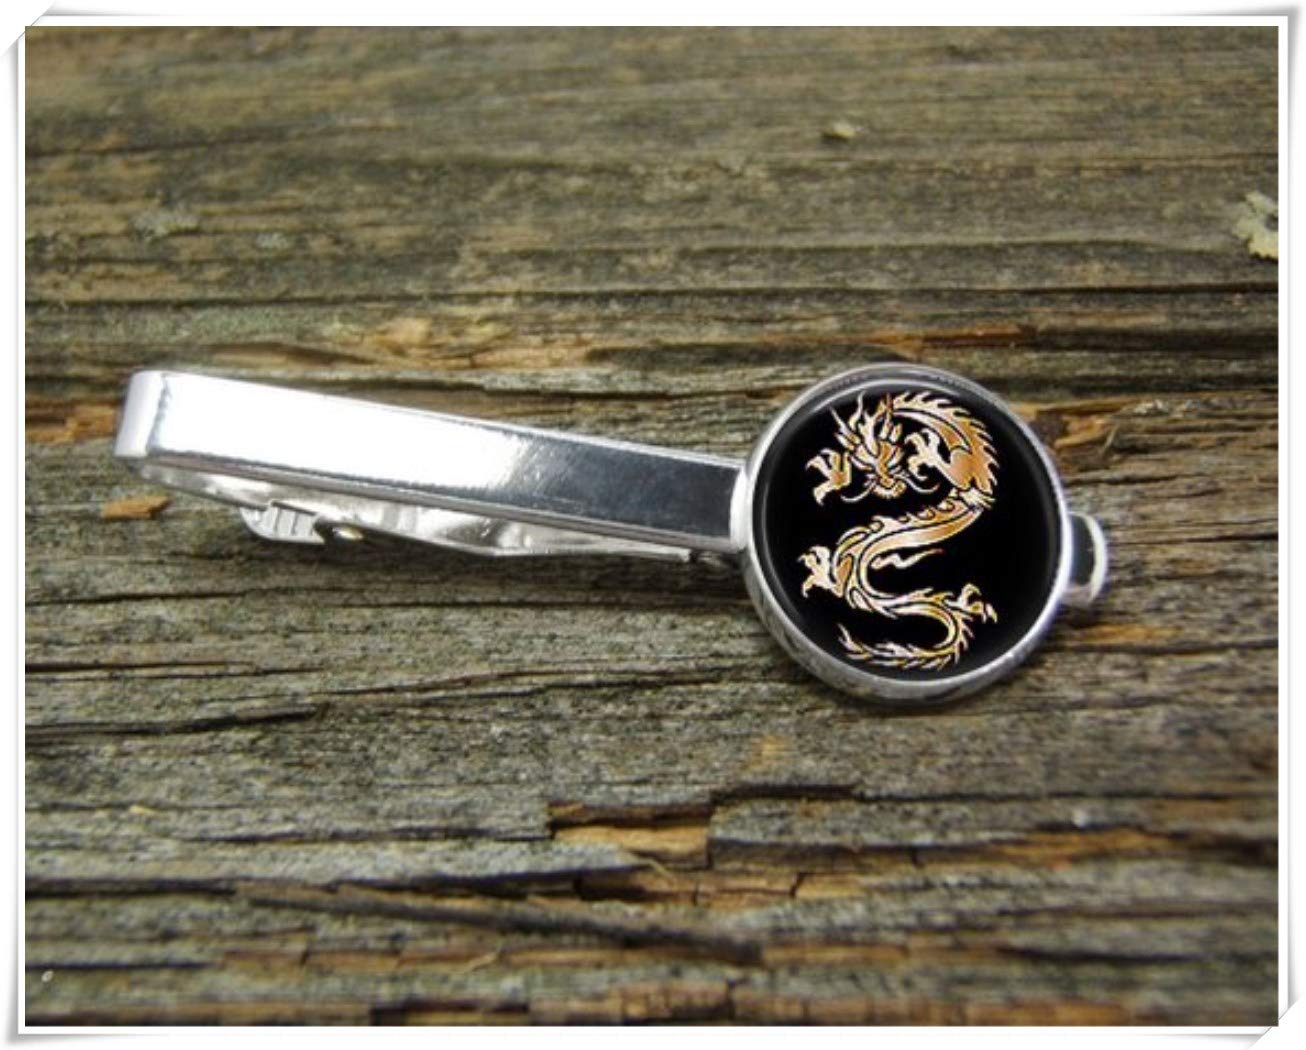 Fashion cool jewelry Dragon Tie Clip,Chinese Dragon Tie Clip,Man Gift,Dome Glass Ornaments, Pure Hand-Made